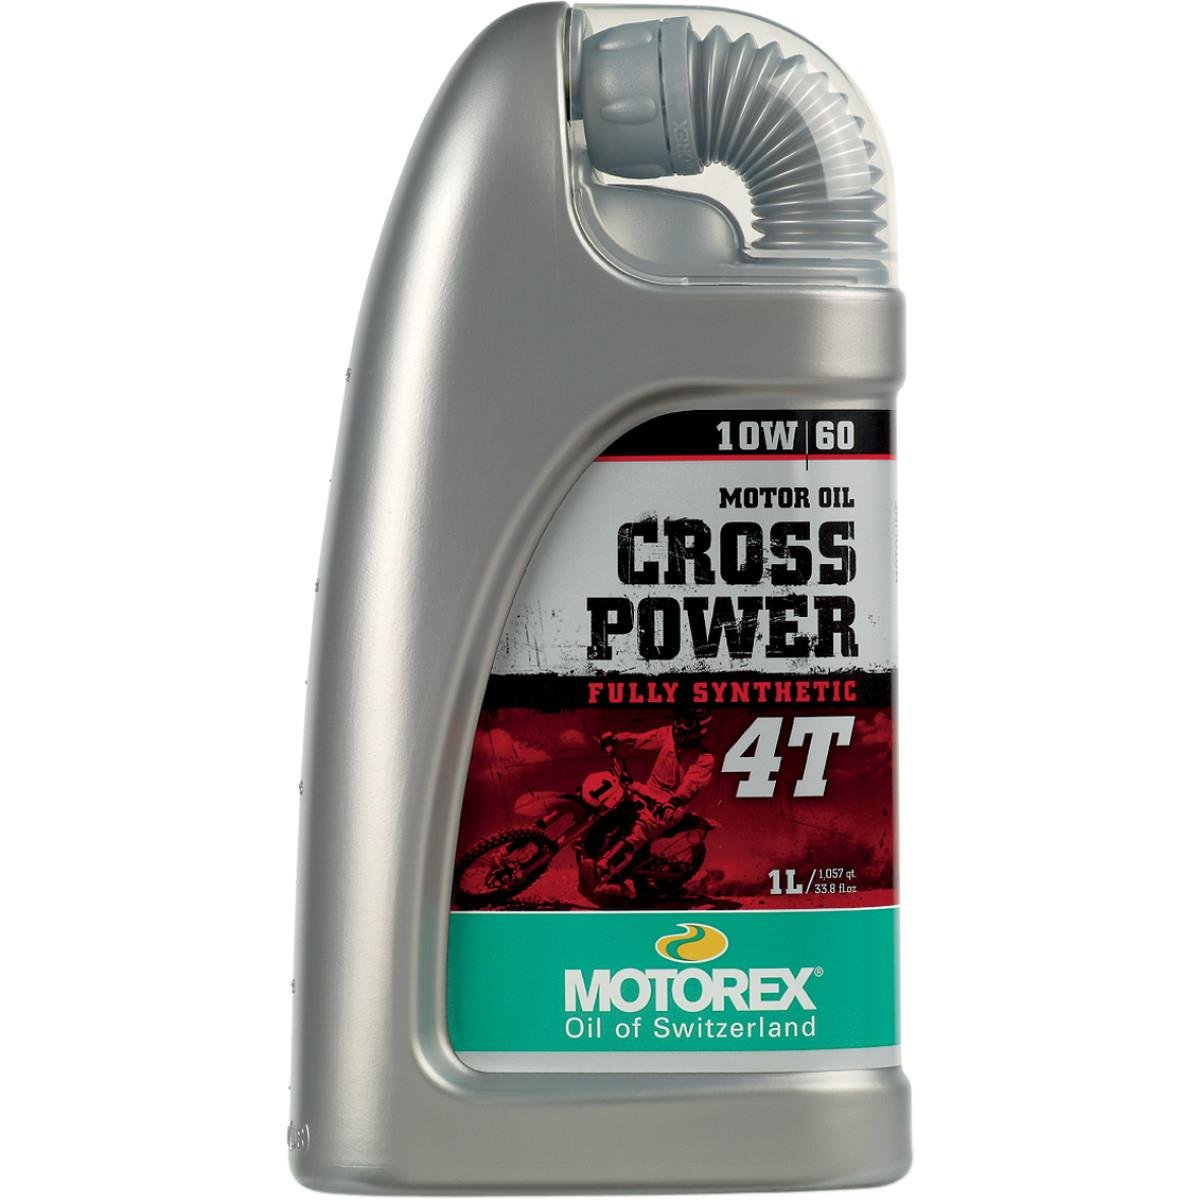 Motorex Cross Power 4T Oil - 10W60 - 1L. 171-403-100 by Motorex 2001225390004